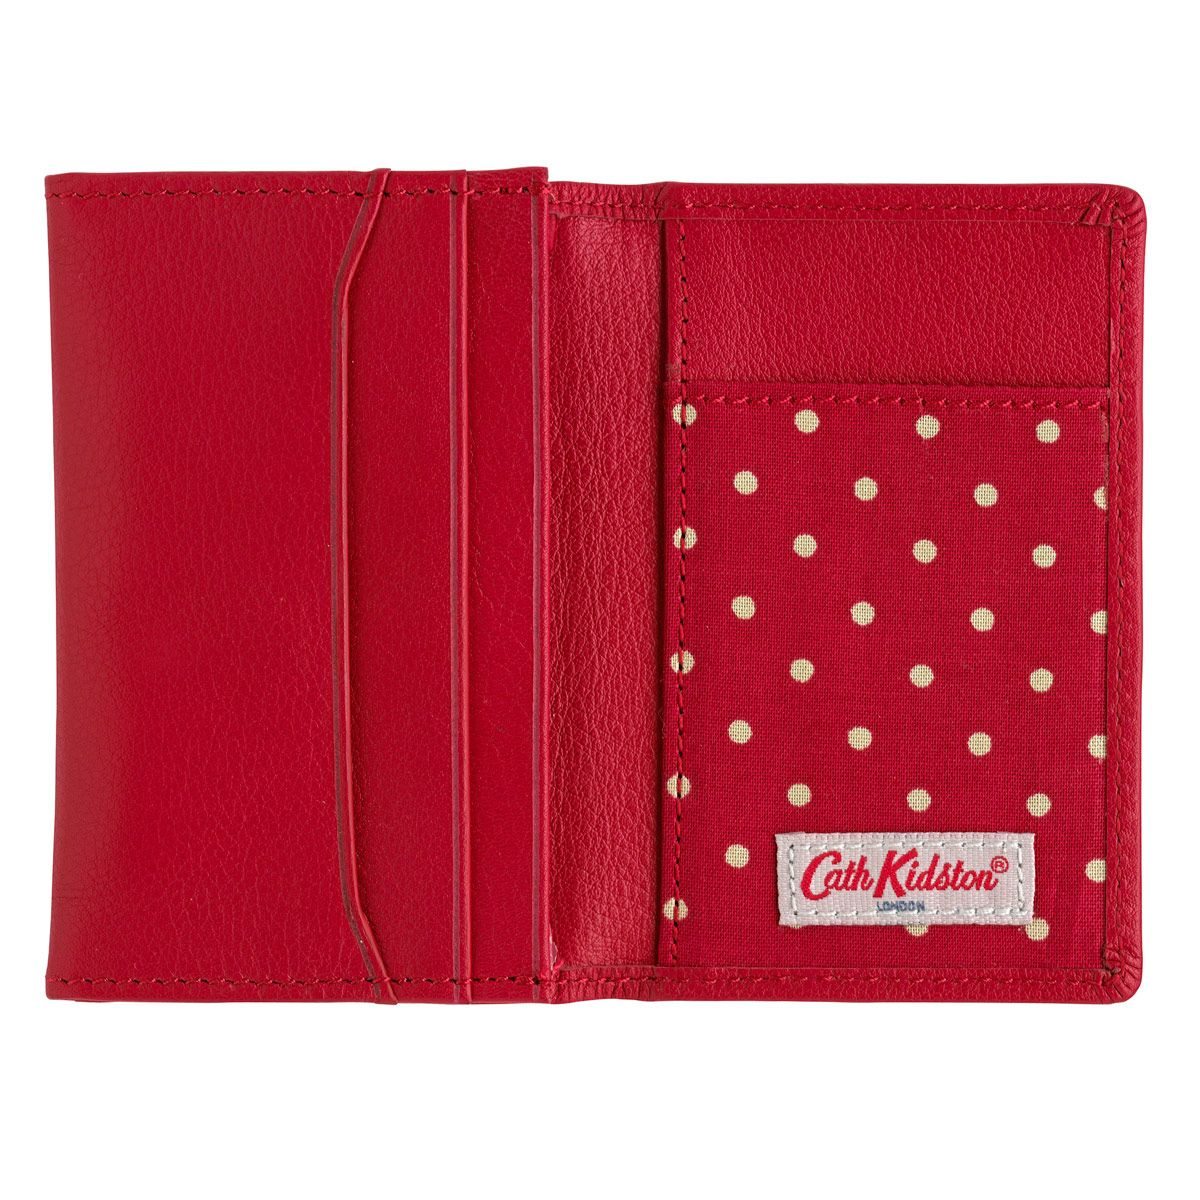 Cath Kidston Leather Business Card Holder | Travel Things ...